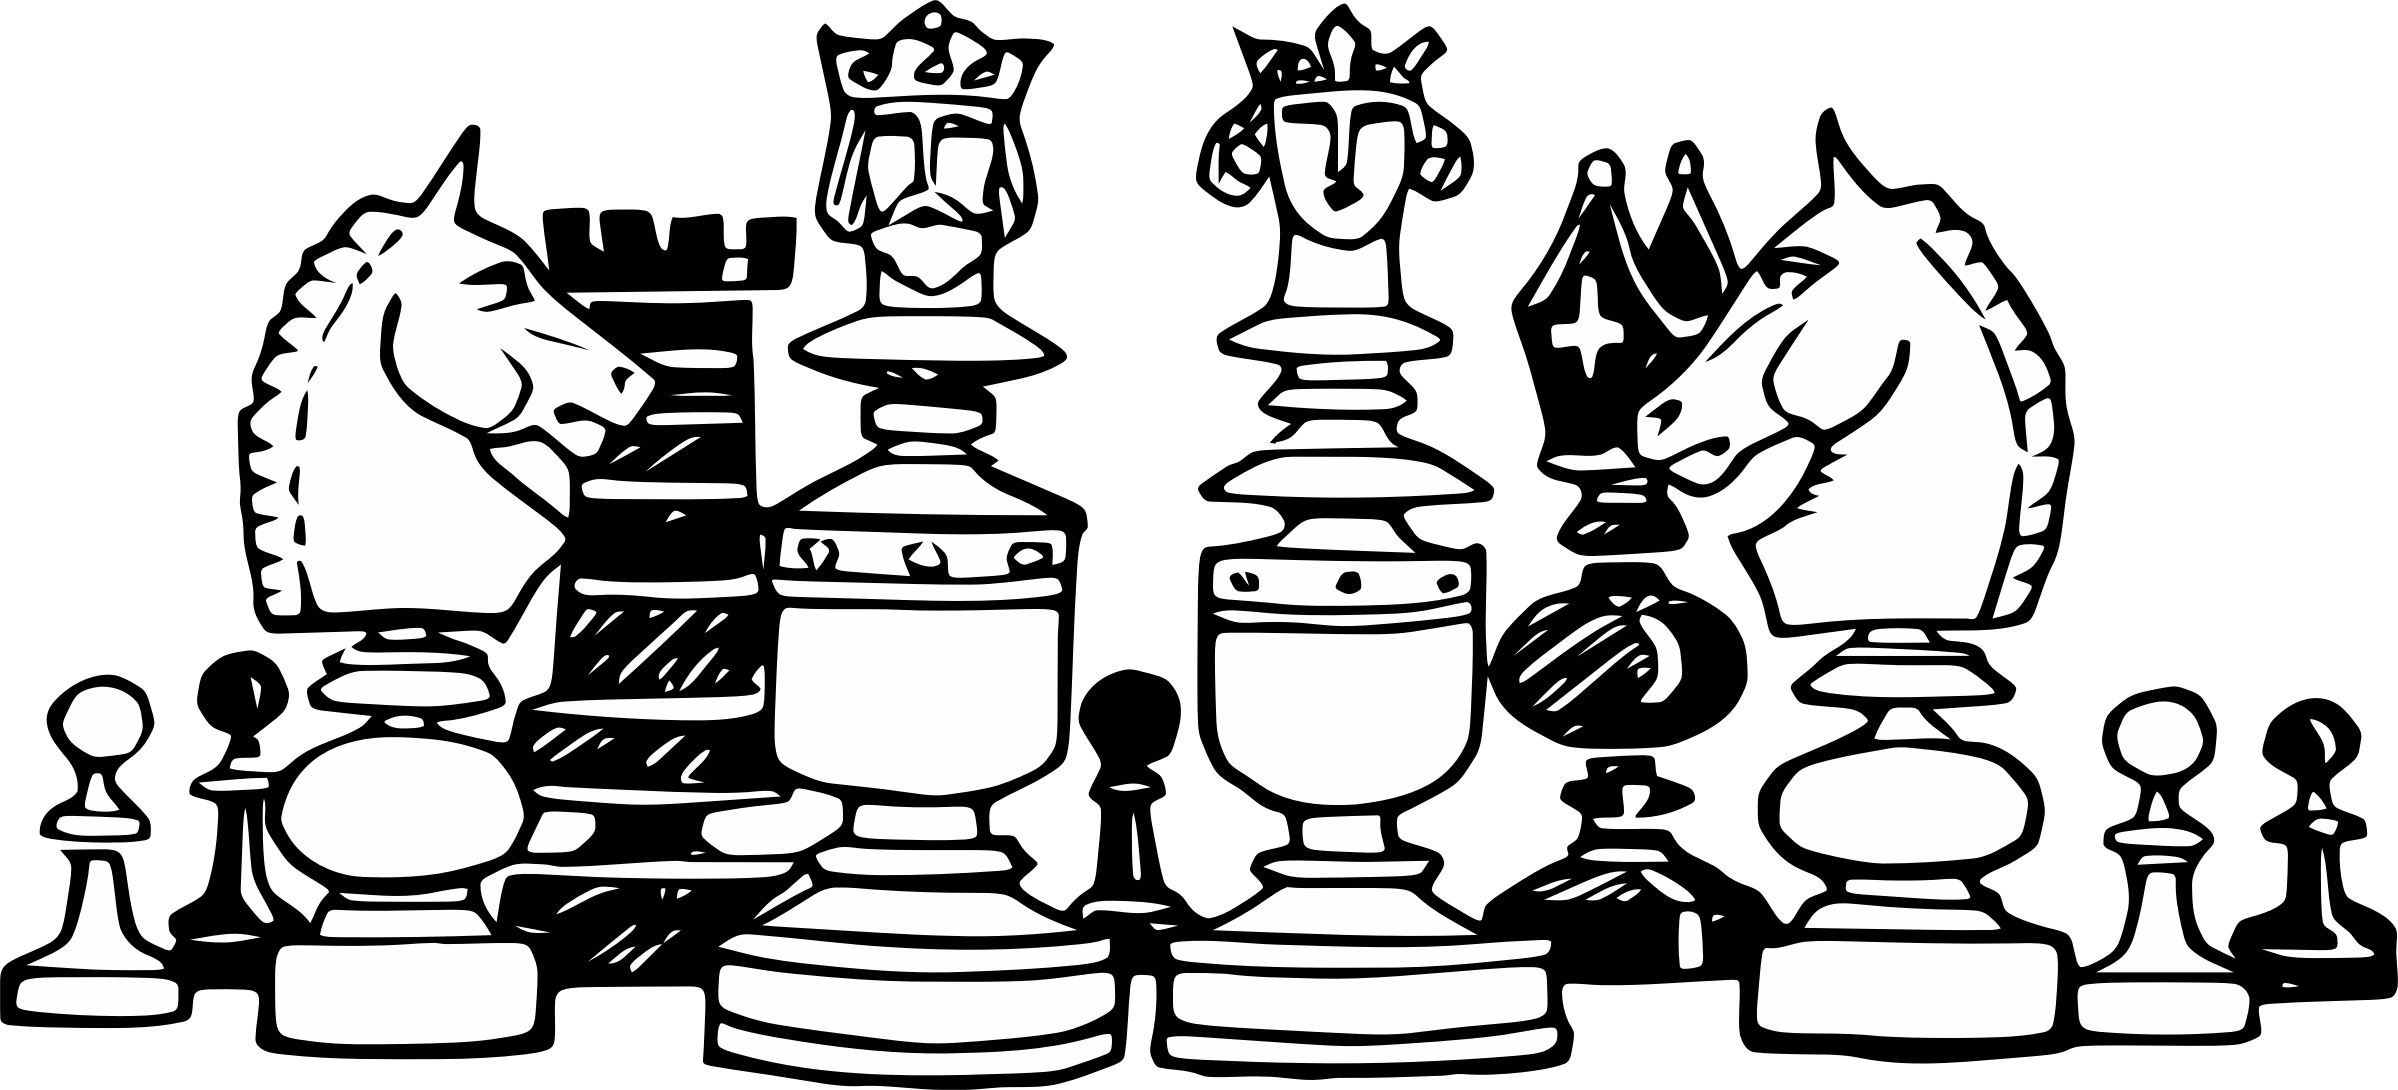 Chess clipart chess piece. Pieces illustration icons png